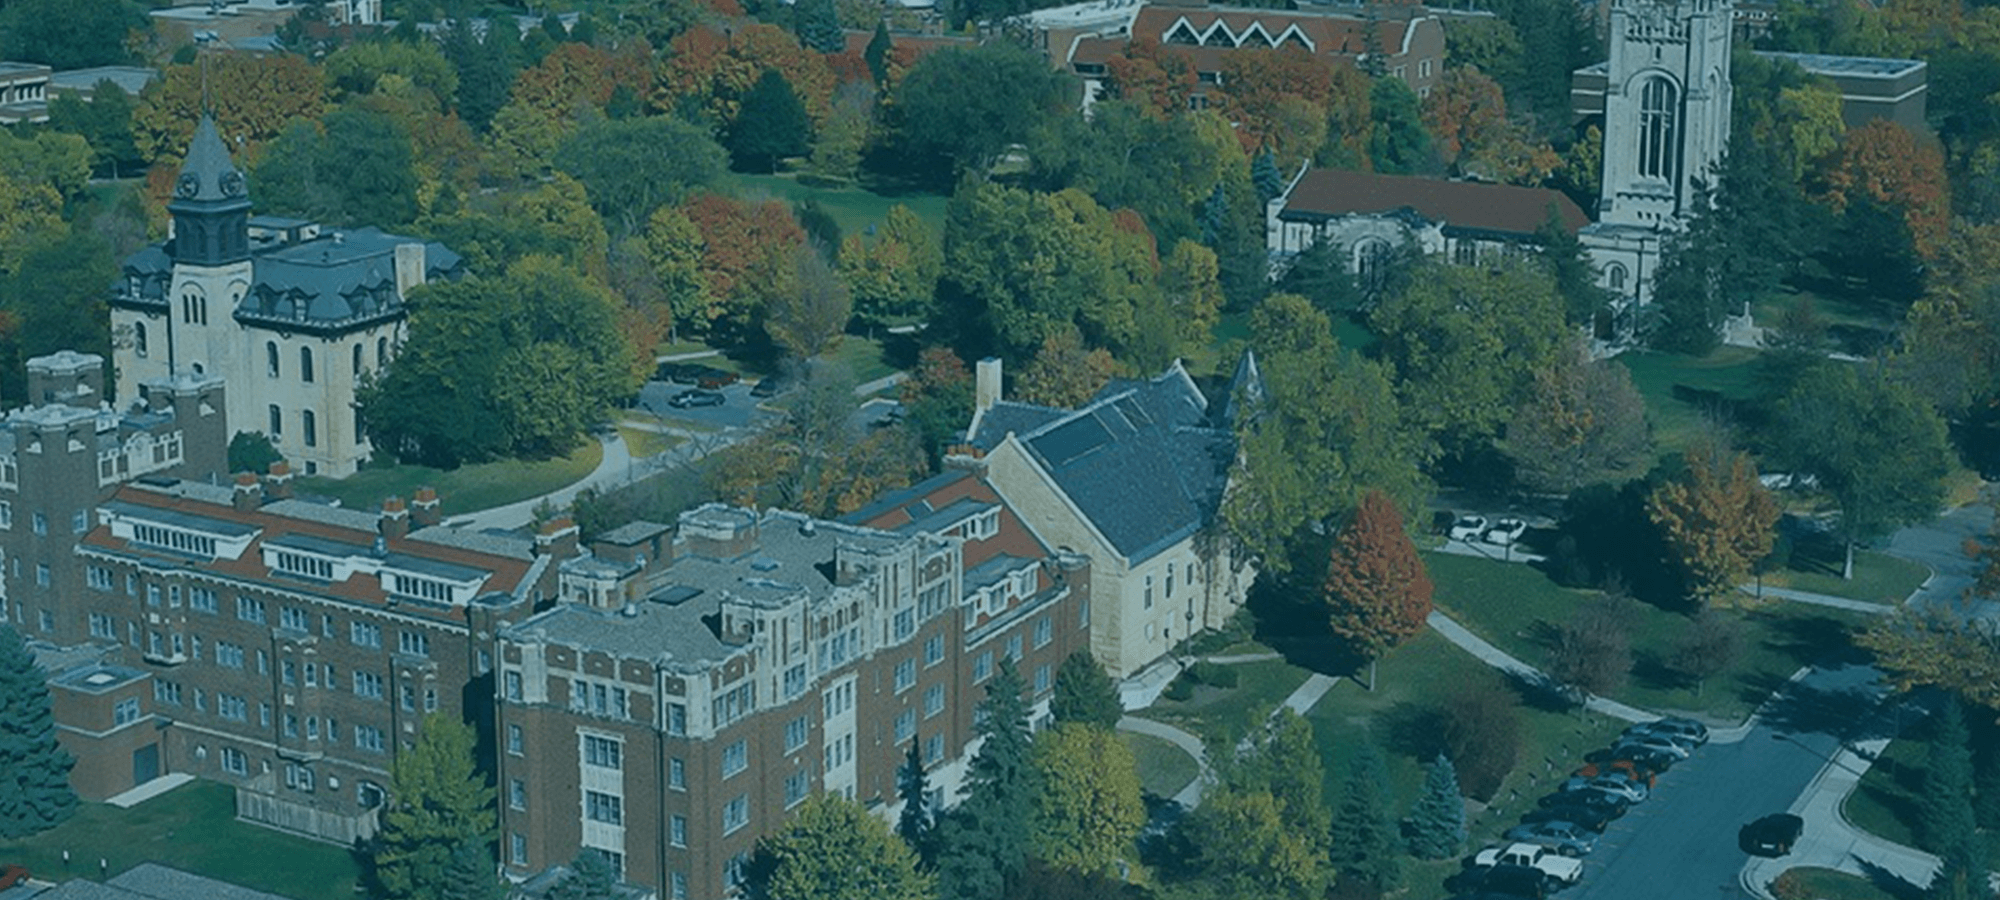 Having Effective Incident Reporting Can Help Maximize Security on Campus